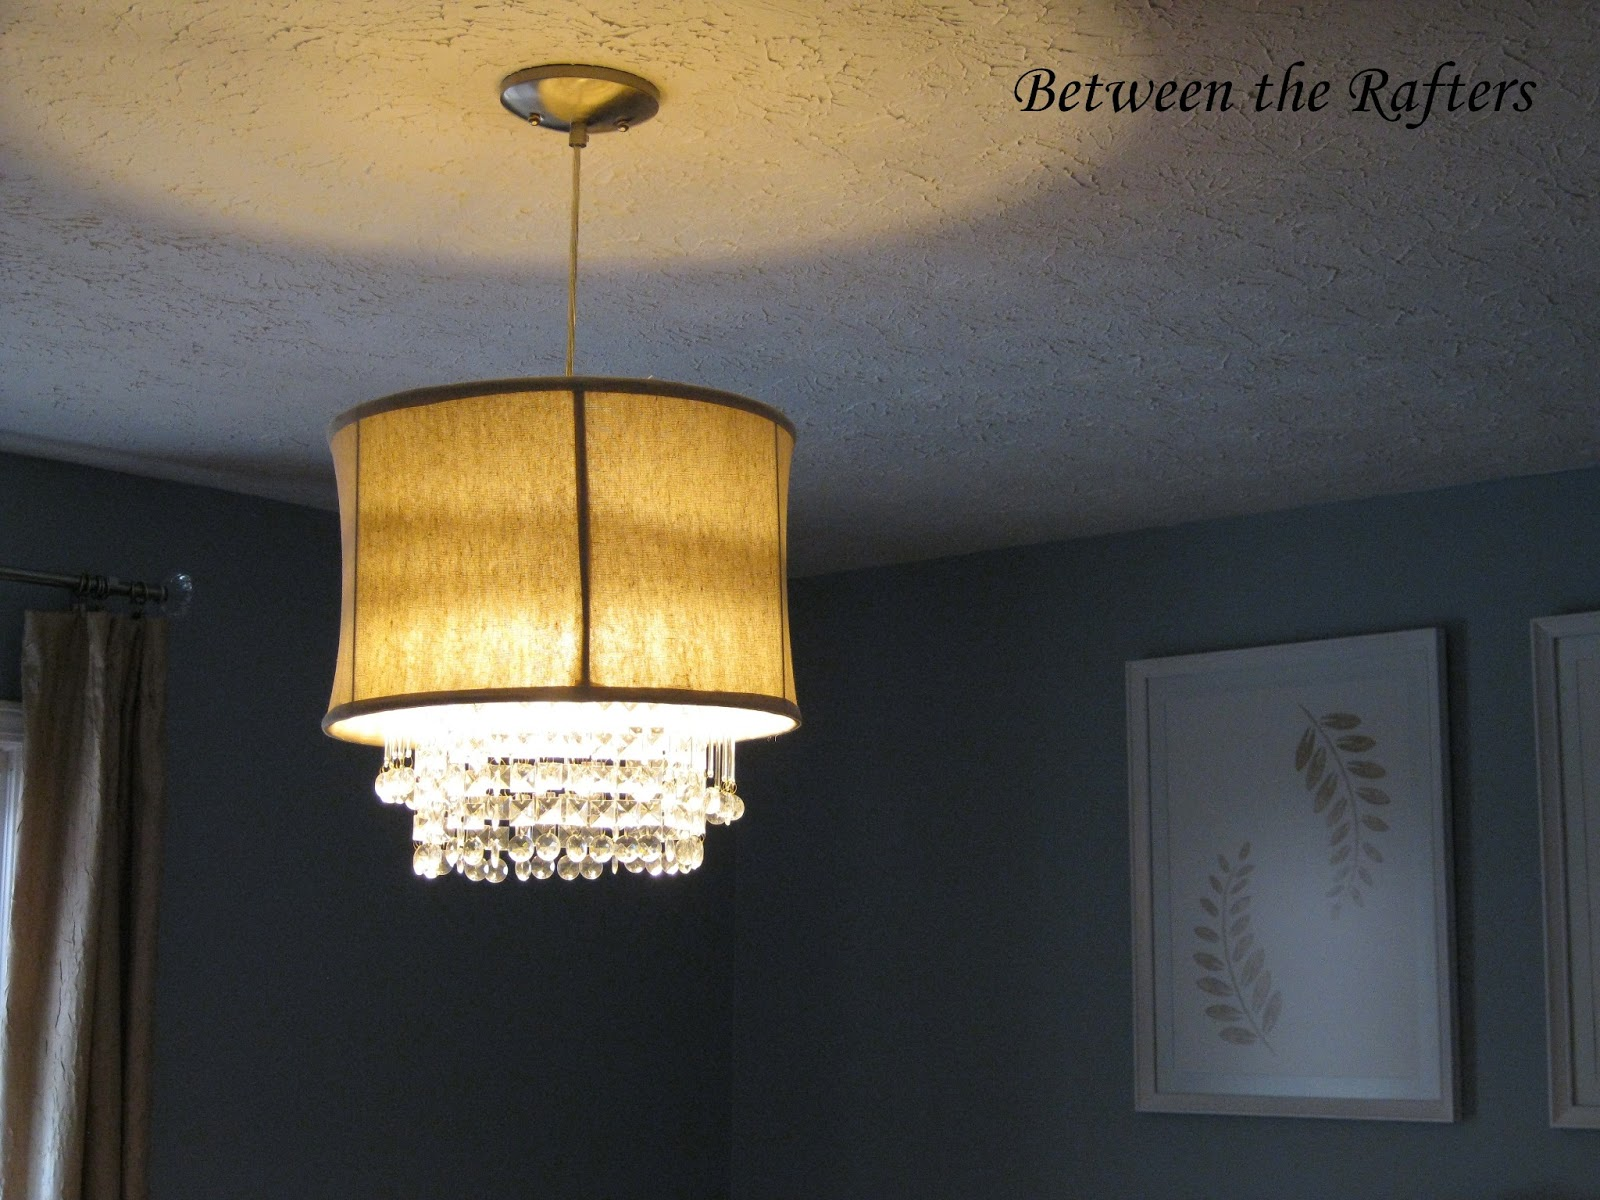 Between the Rafters DIY Drum Shade With Crystals Tutorial